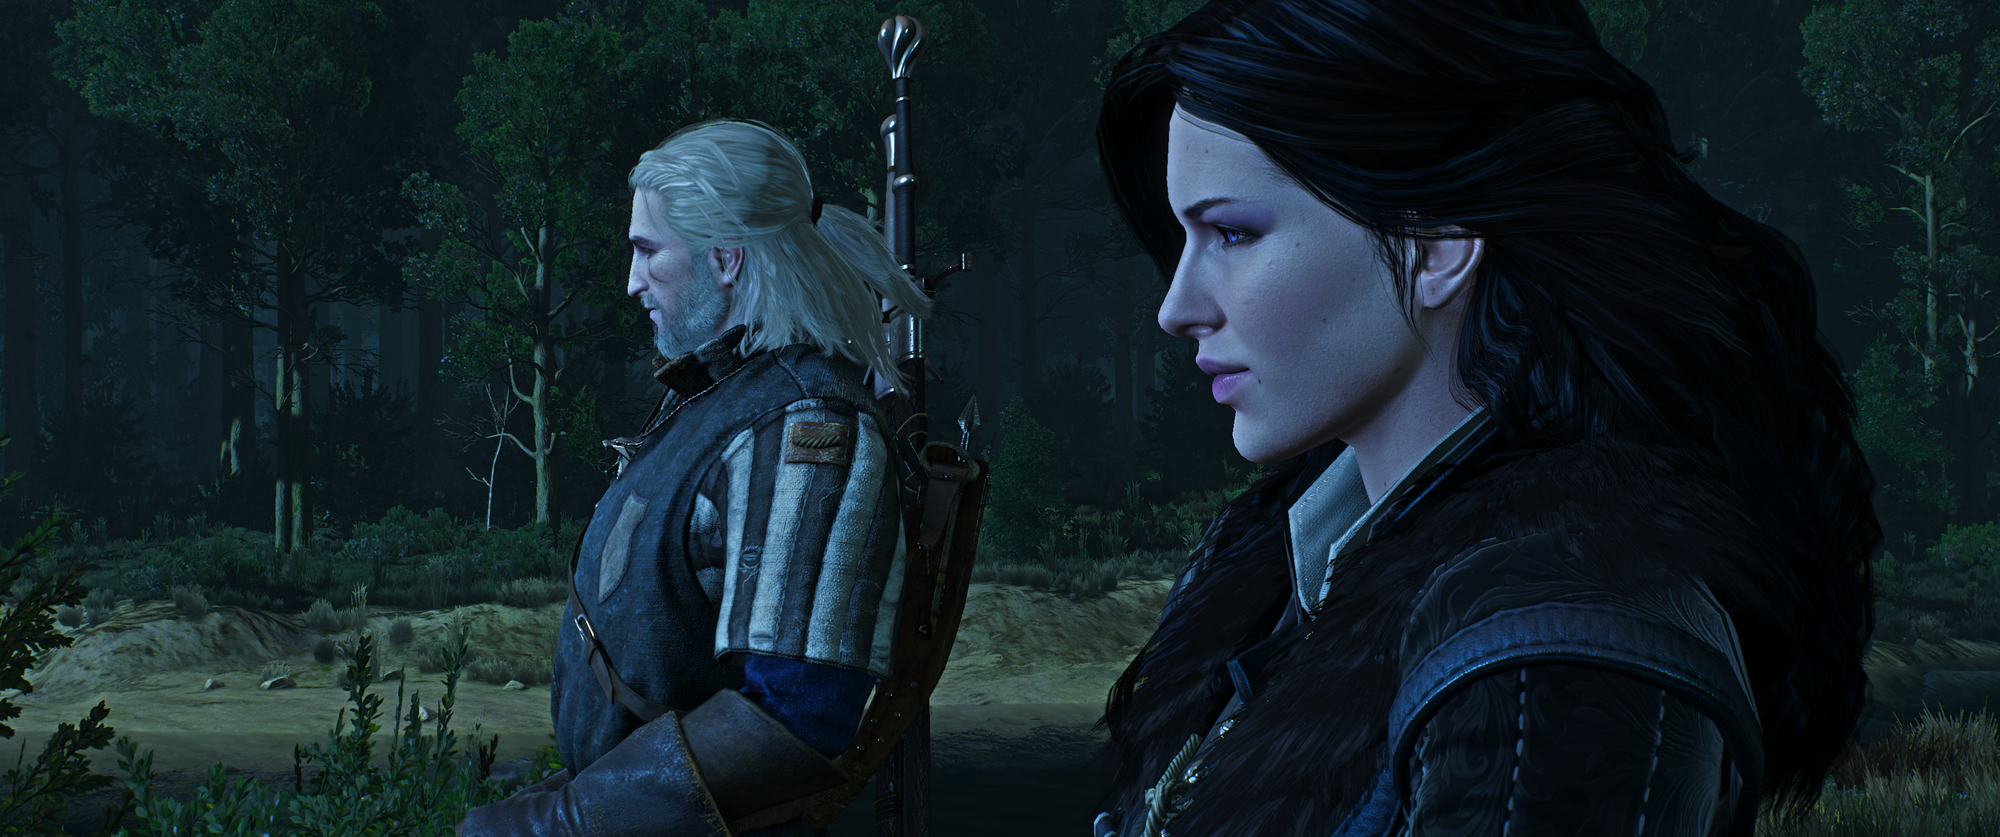 The Witcher 3 Screenshot 2019.01.02 - 22.49.58.85.png